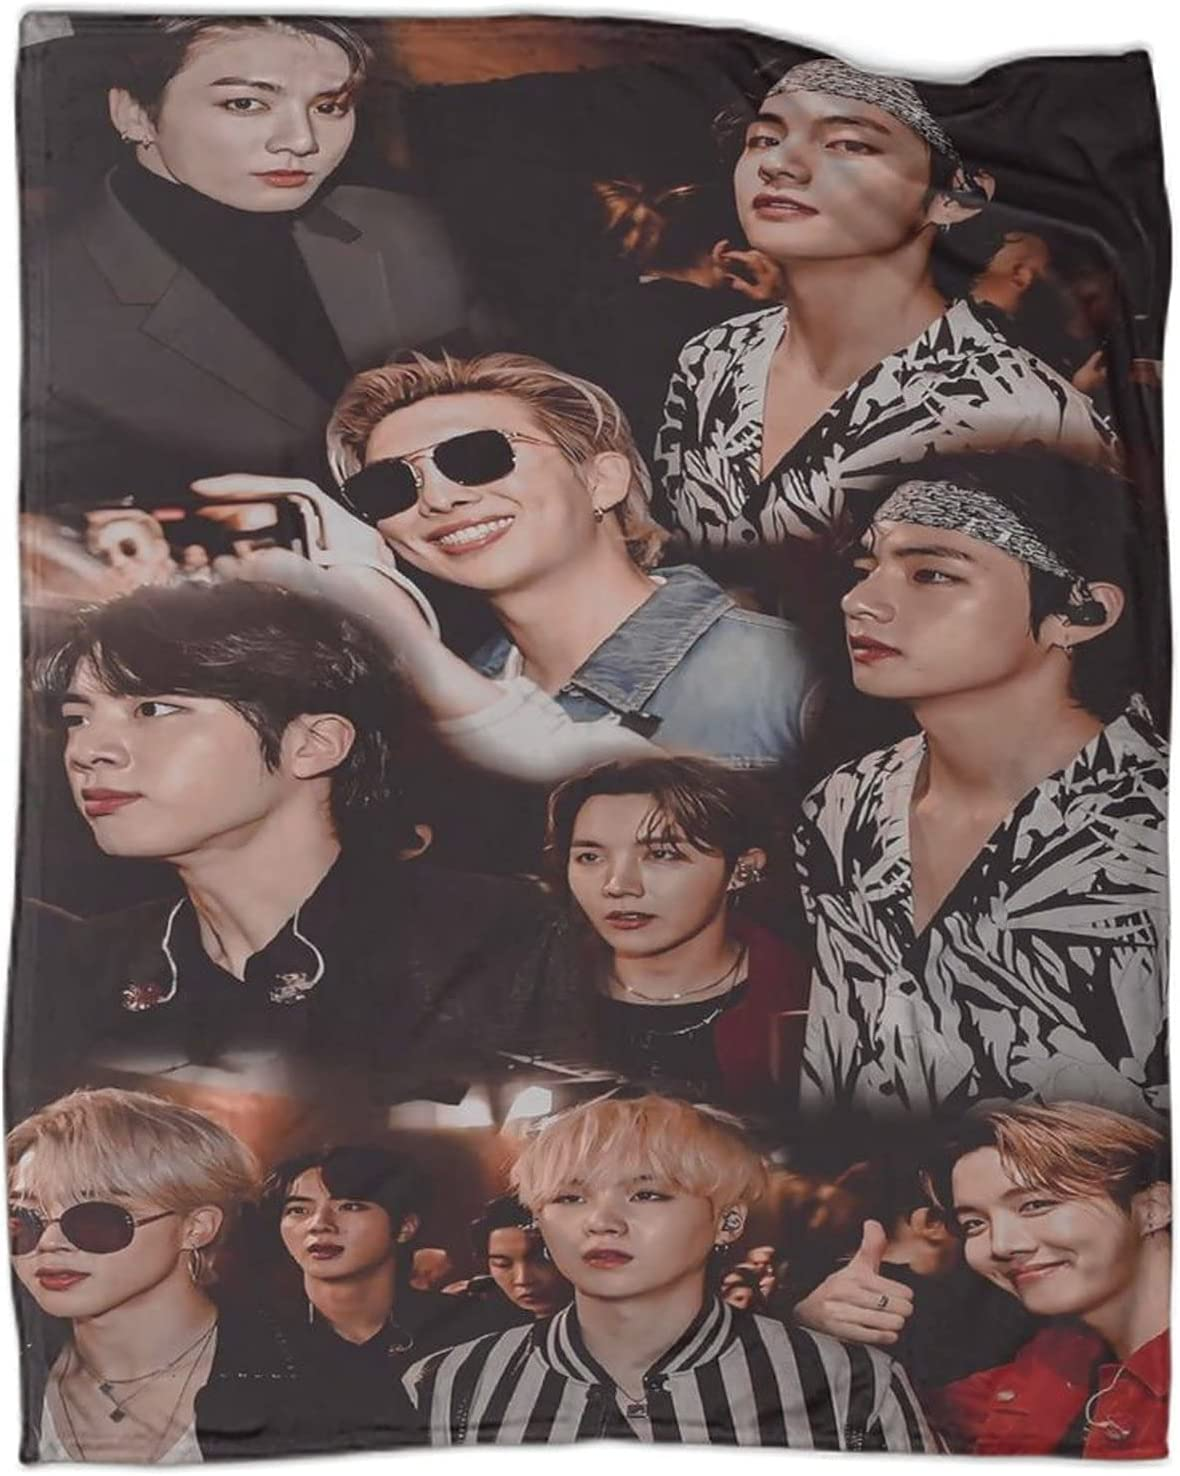 Wugod Fixed price for sale B-t-s Super special price Bangtan Boys 2020 So Blanket Lightweight Throw